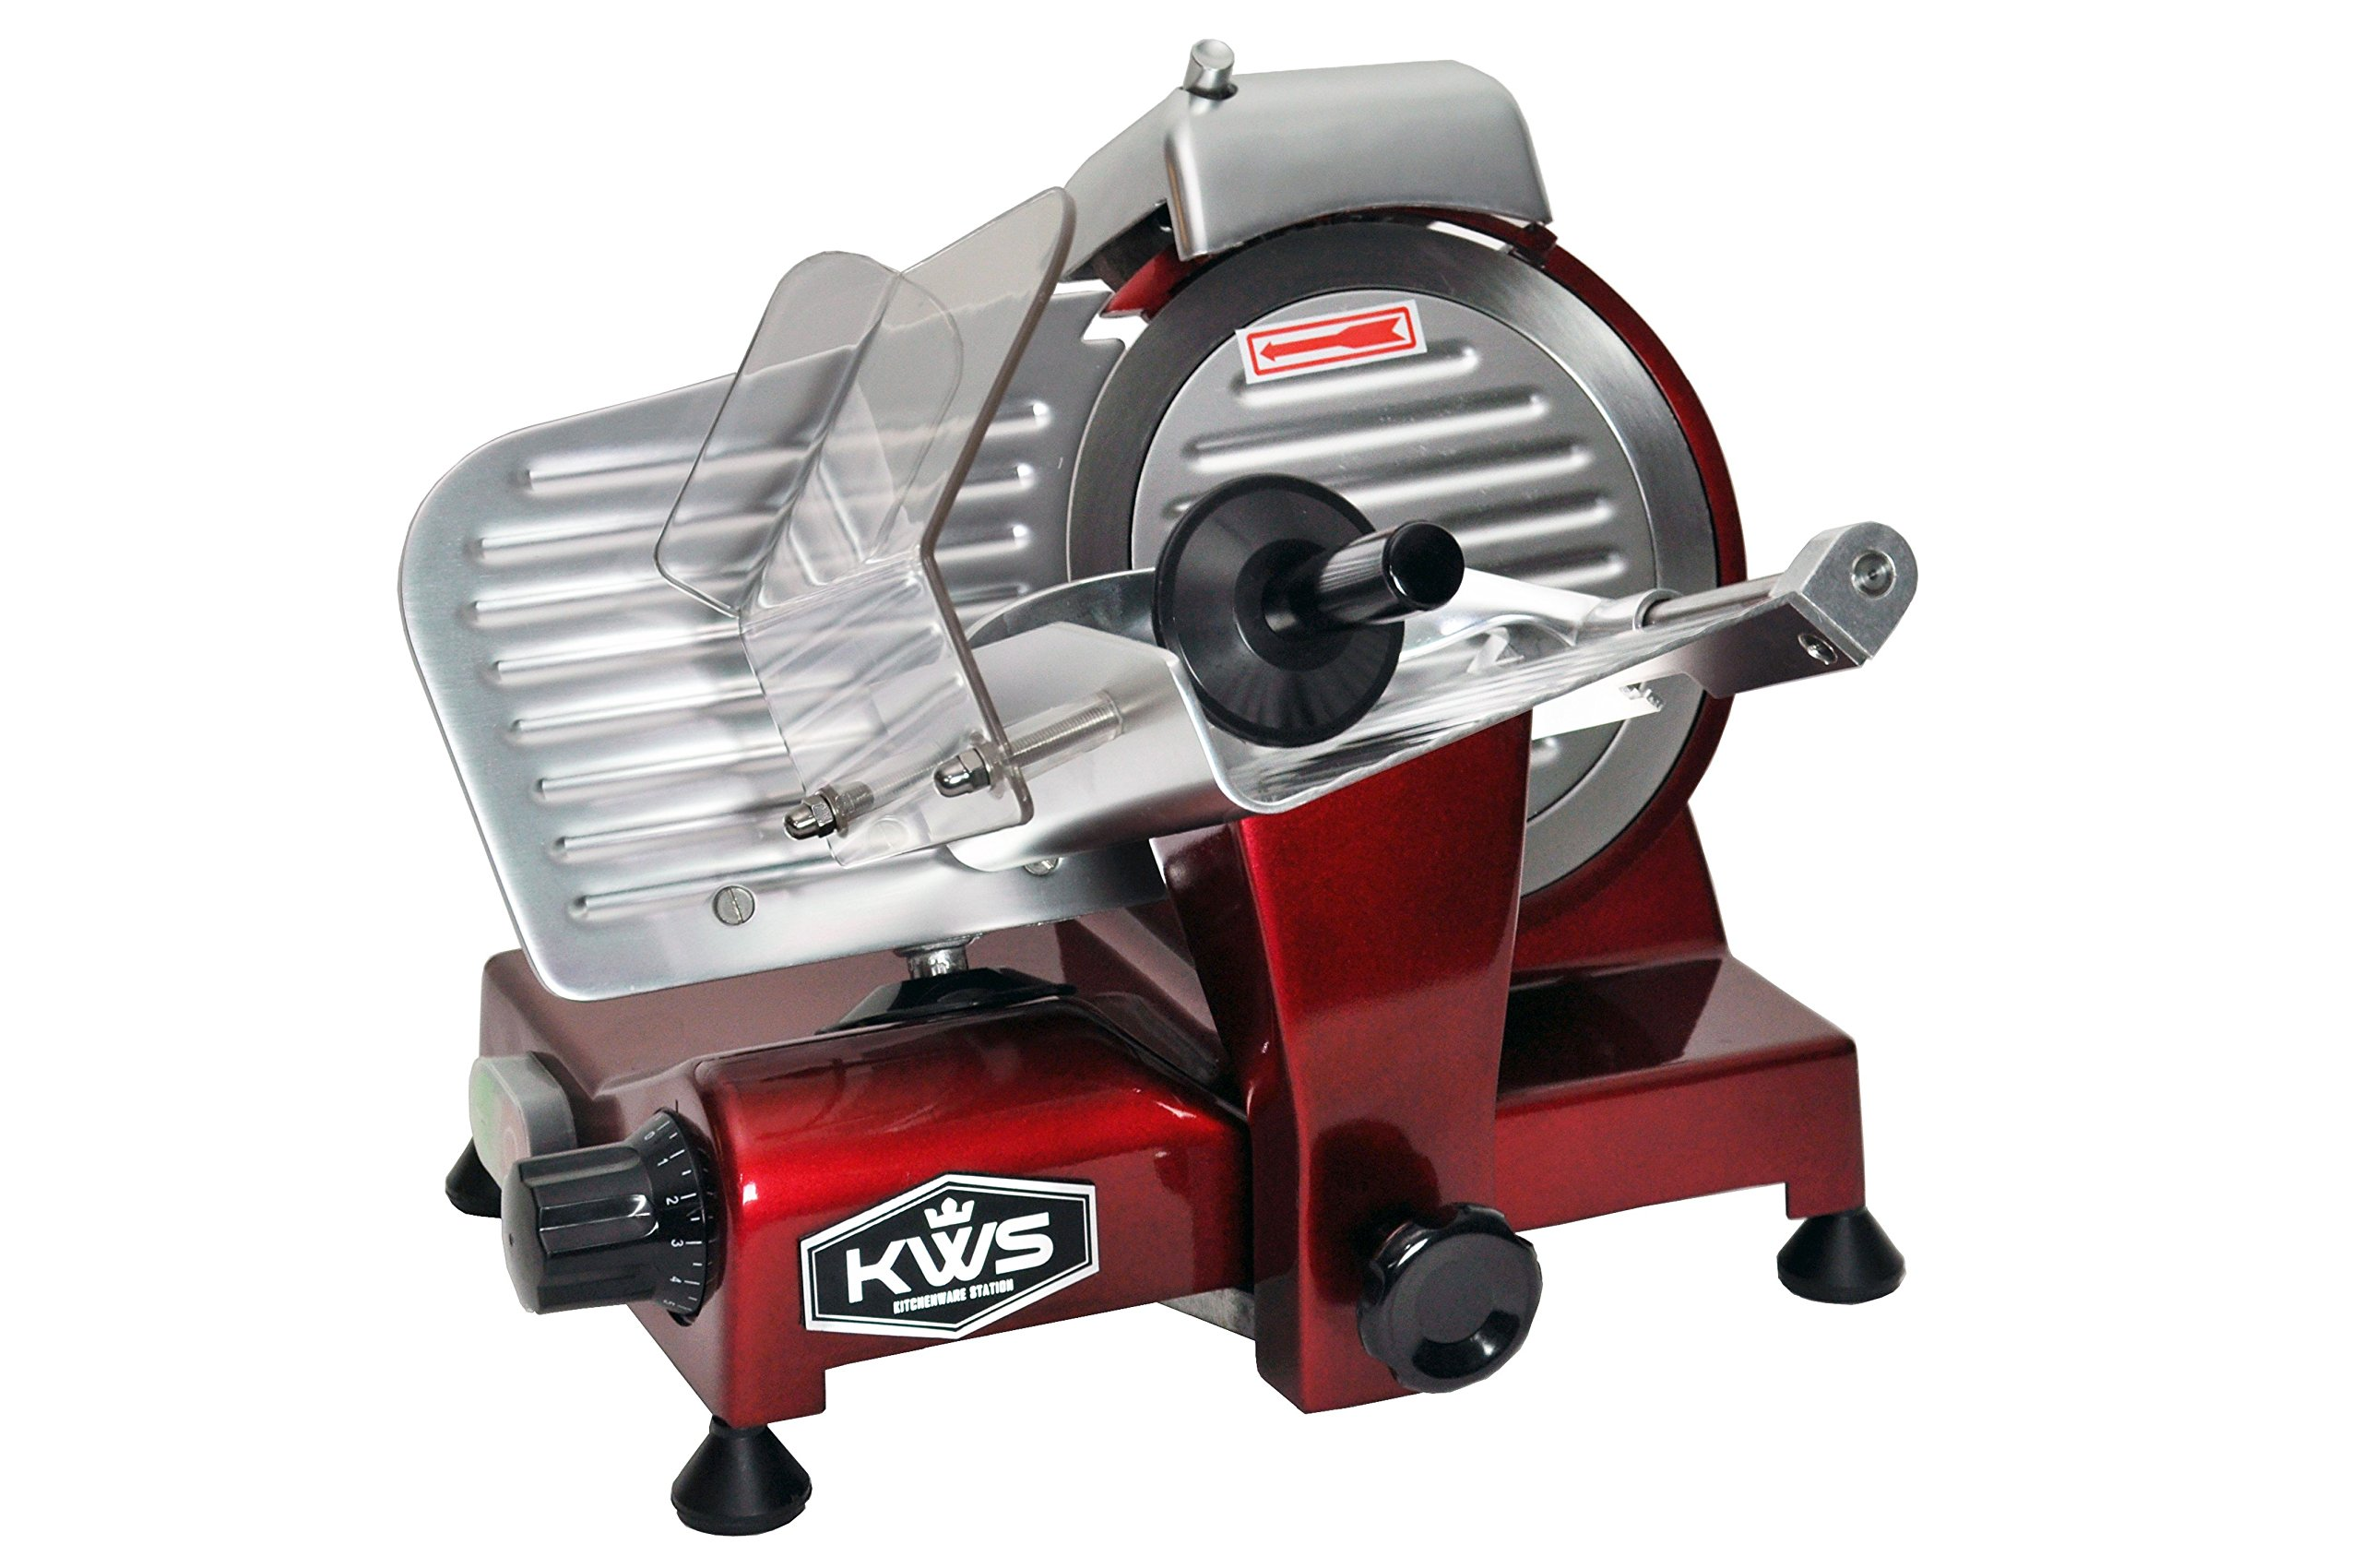 KWS Premium 200w Electric Meat Slicer 6''(Red) Stainless Steel Blade, Frozen Meat/ Cheese/ Food Slicer Low Noises